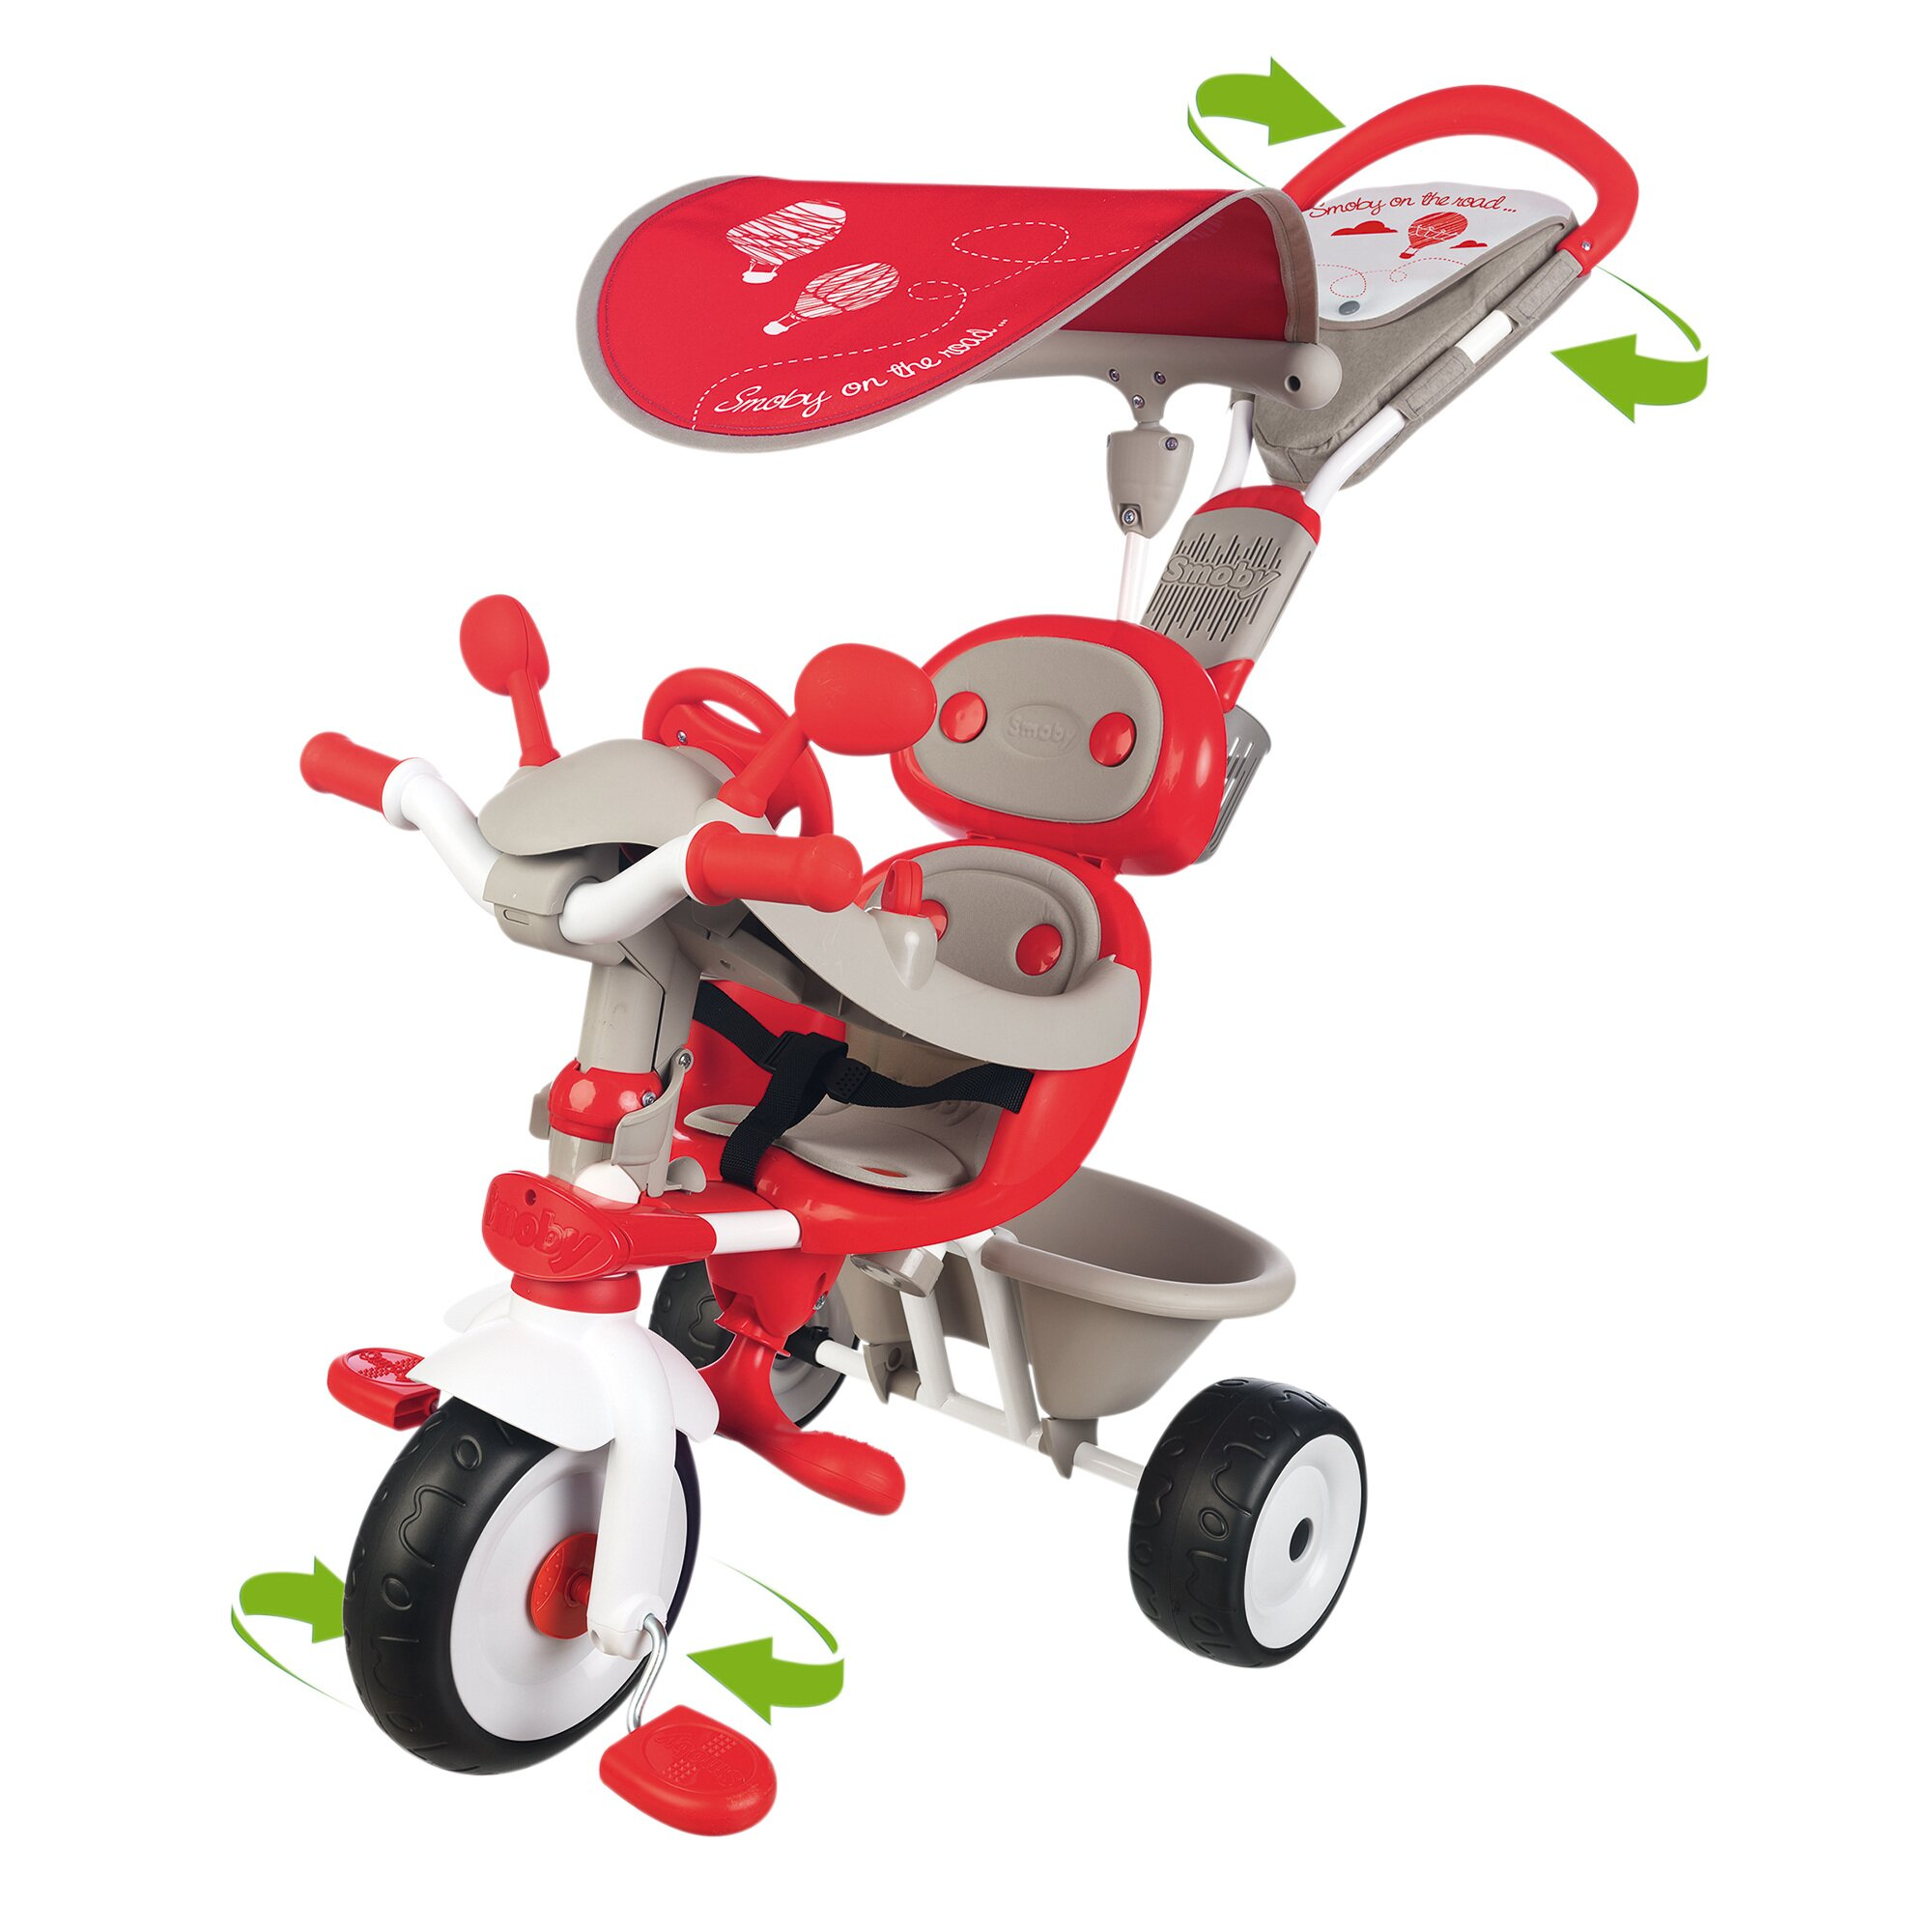 Smoby Dreirad Baby Driver Komfort 4 in 1